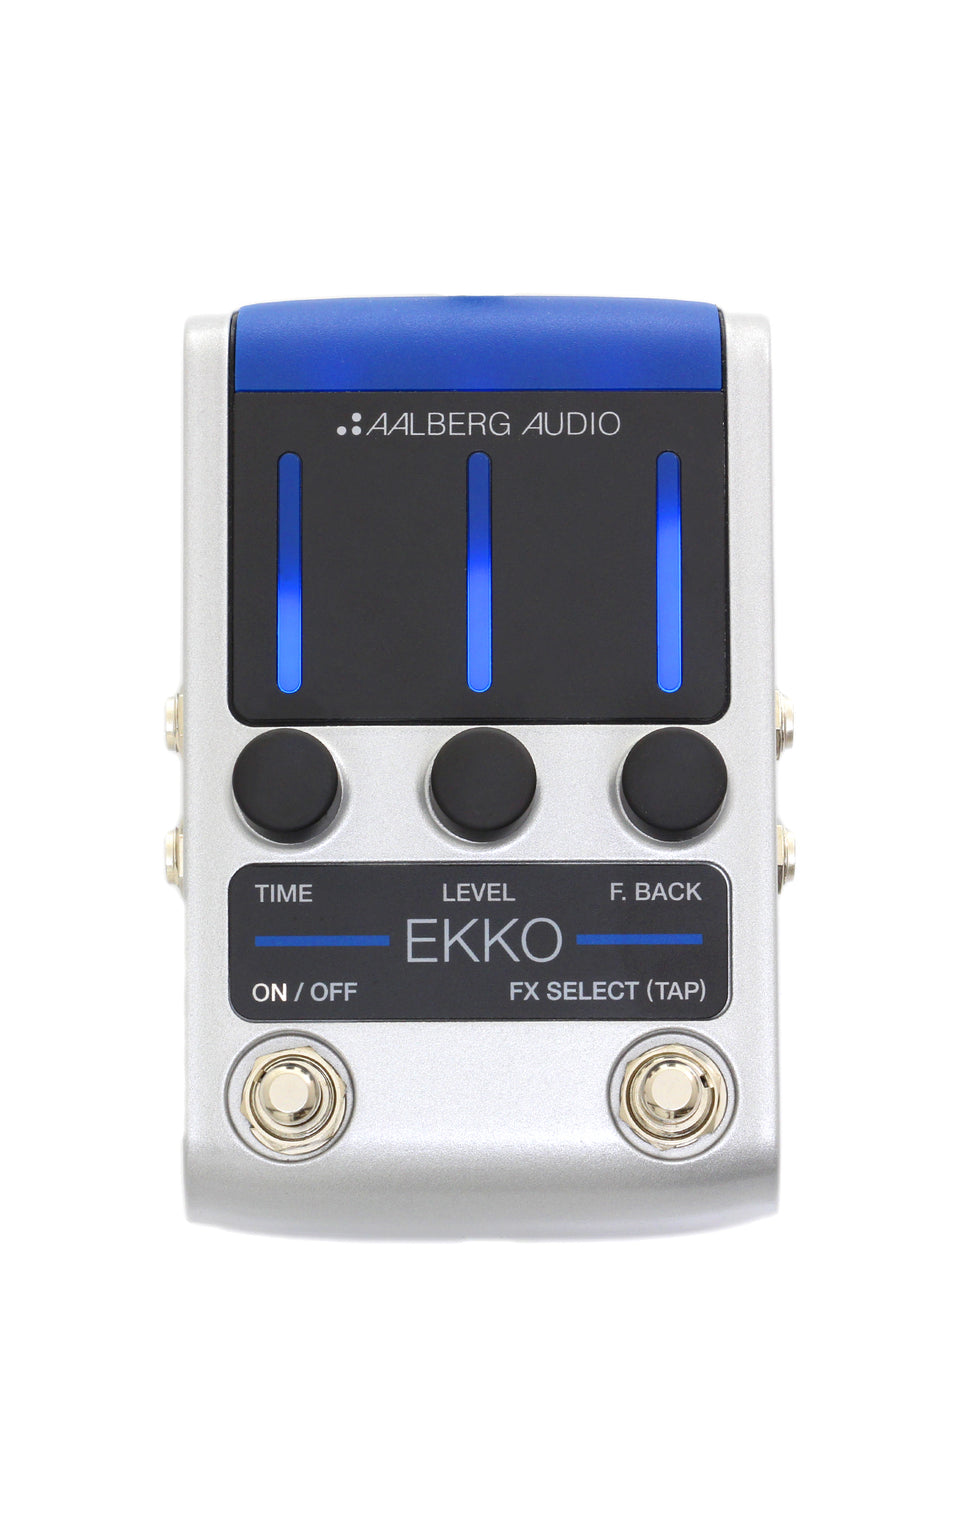 Aalberg Audio EK1 EKKO Delay Pedal